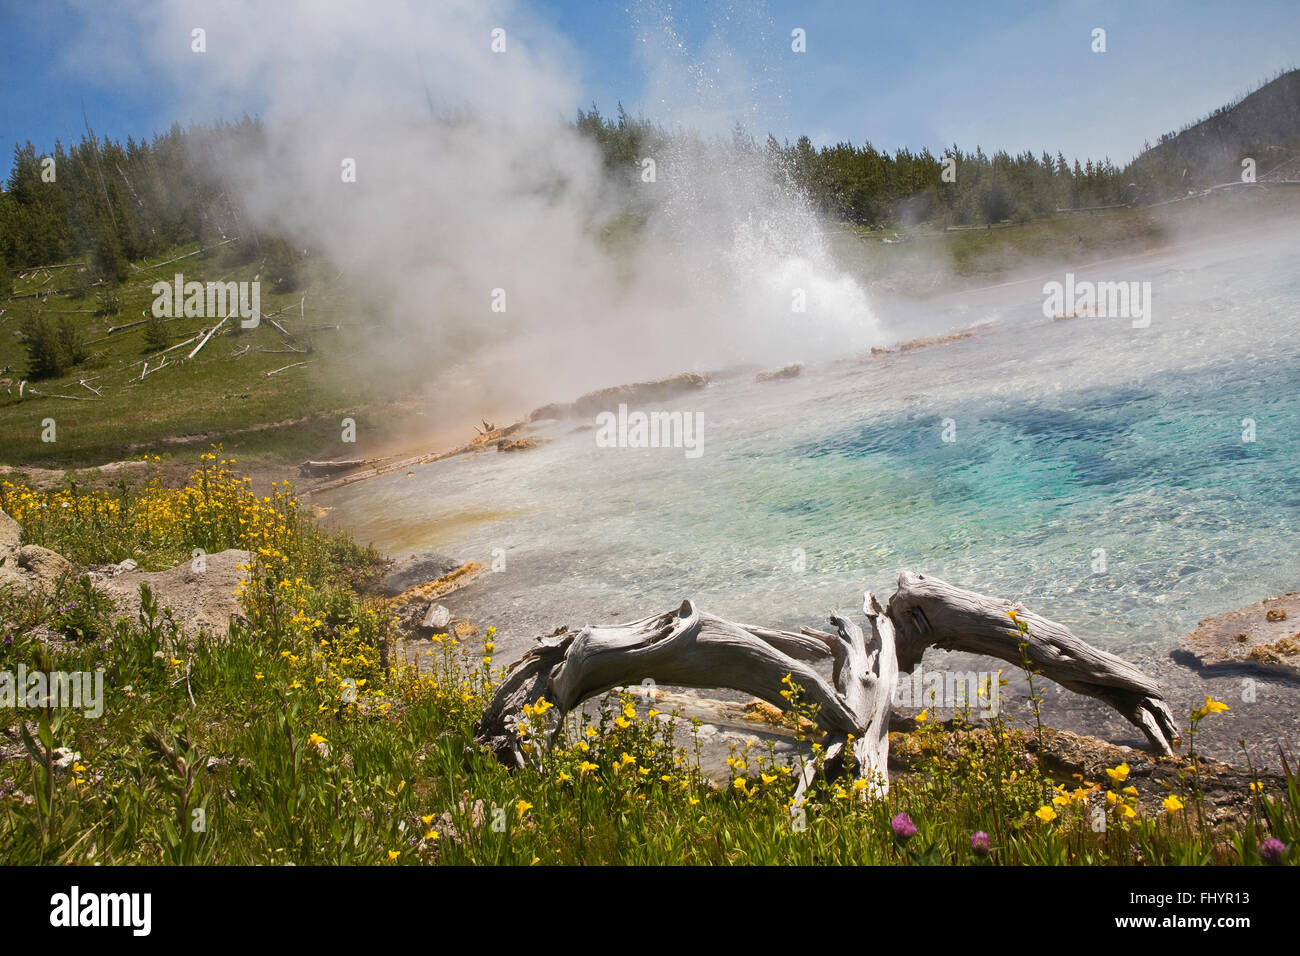 IMPERIAL GEYSER erupts into a small pool in the LOWER IMPERIAL BASIN  - YELLOWSTONE NATIONAL PARK, WYOMING - Stock Image